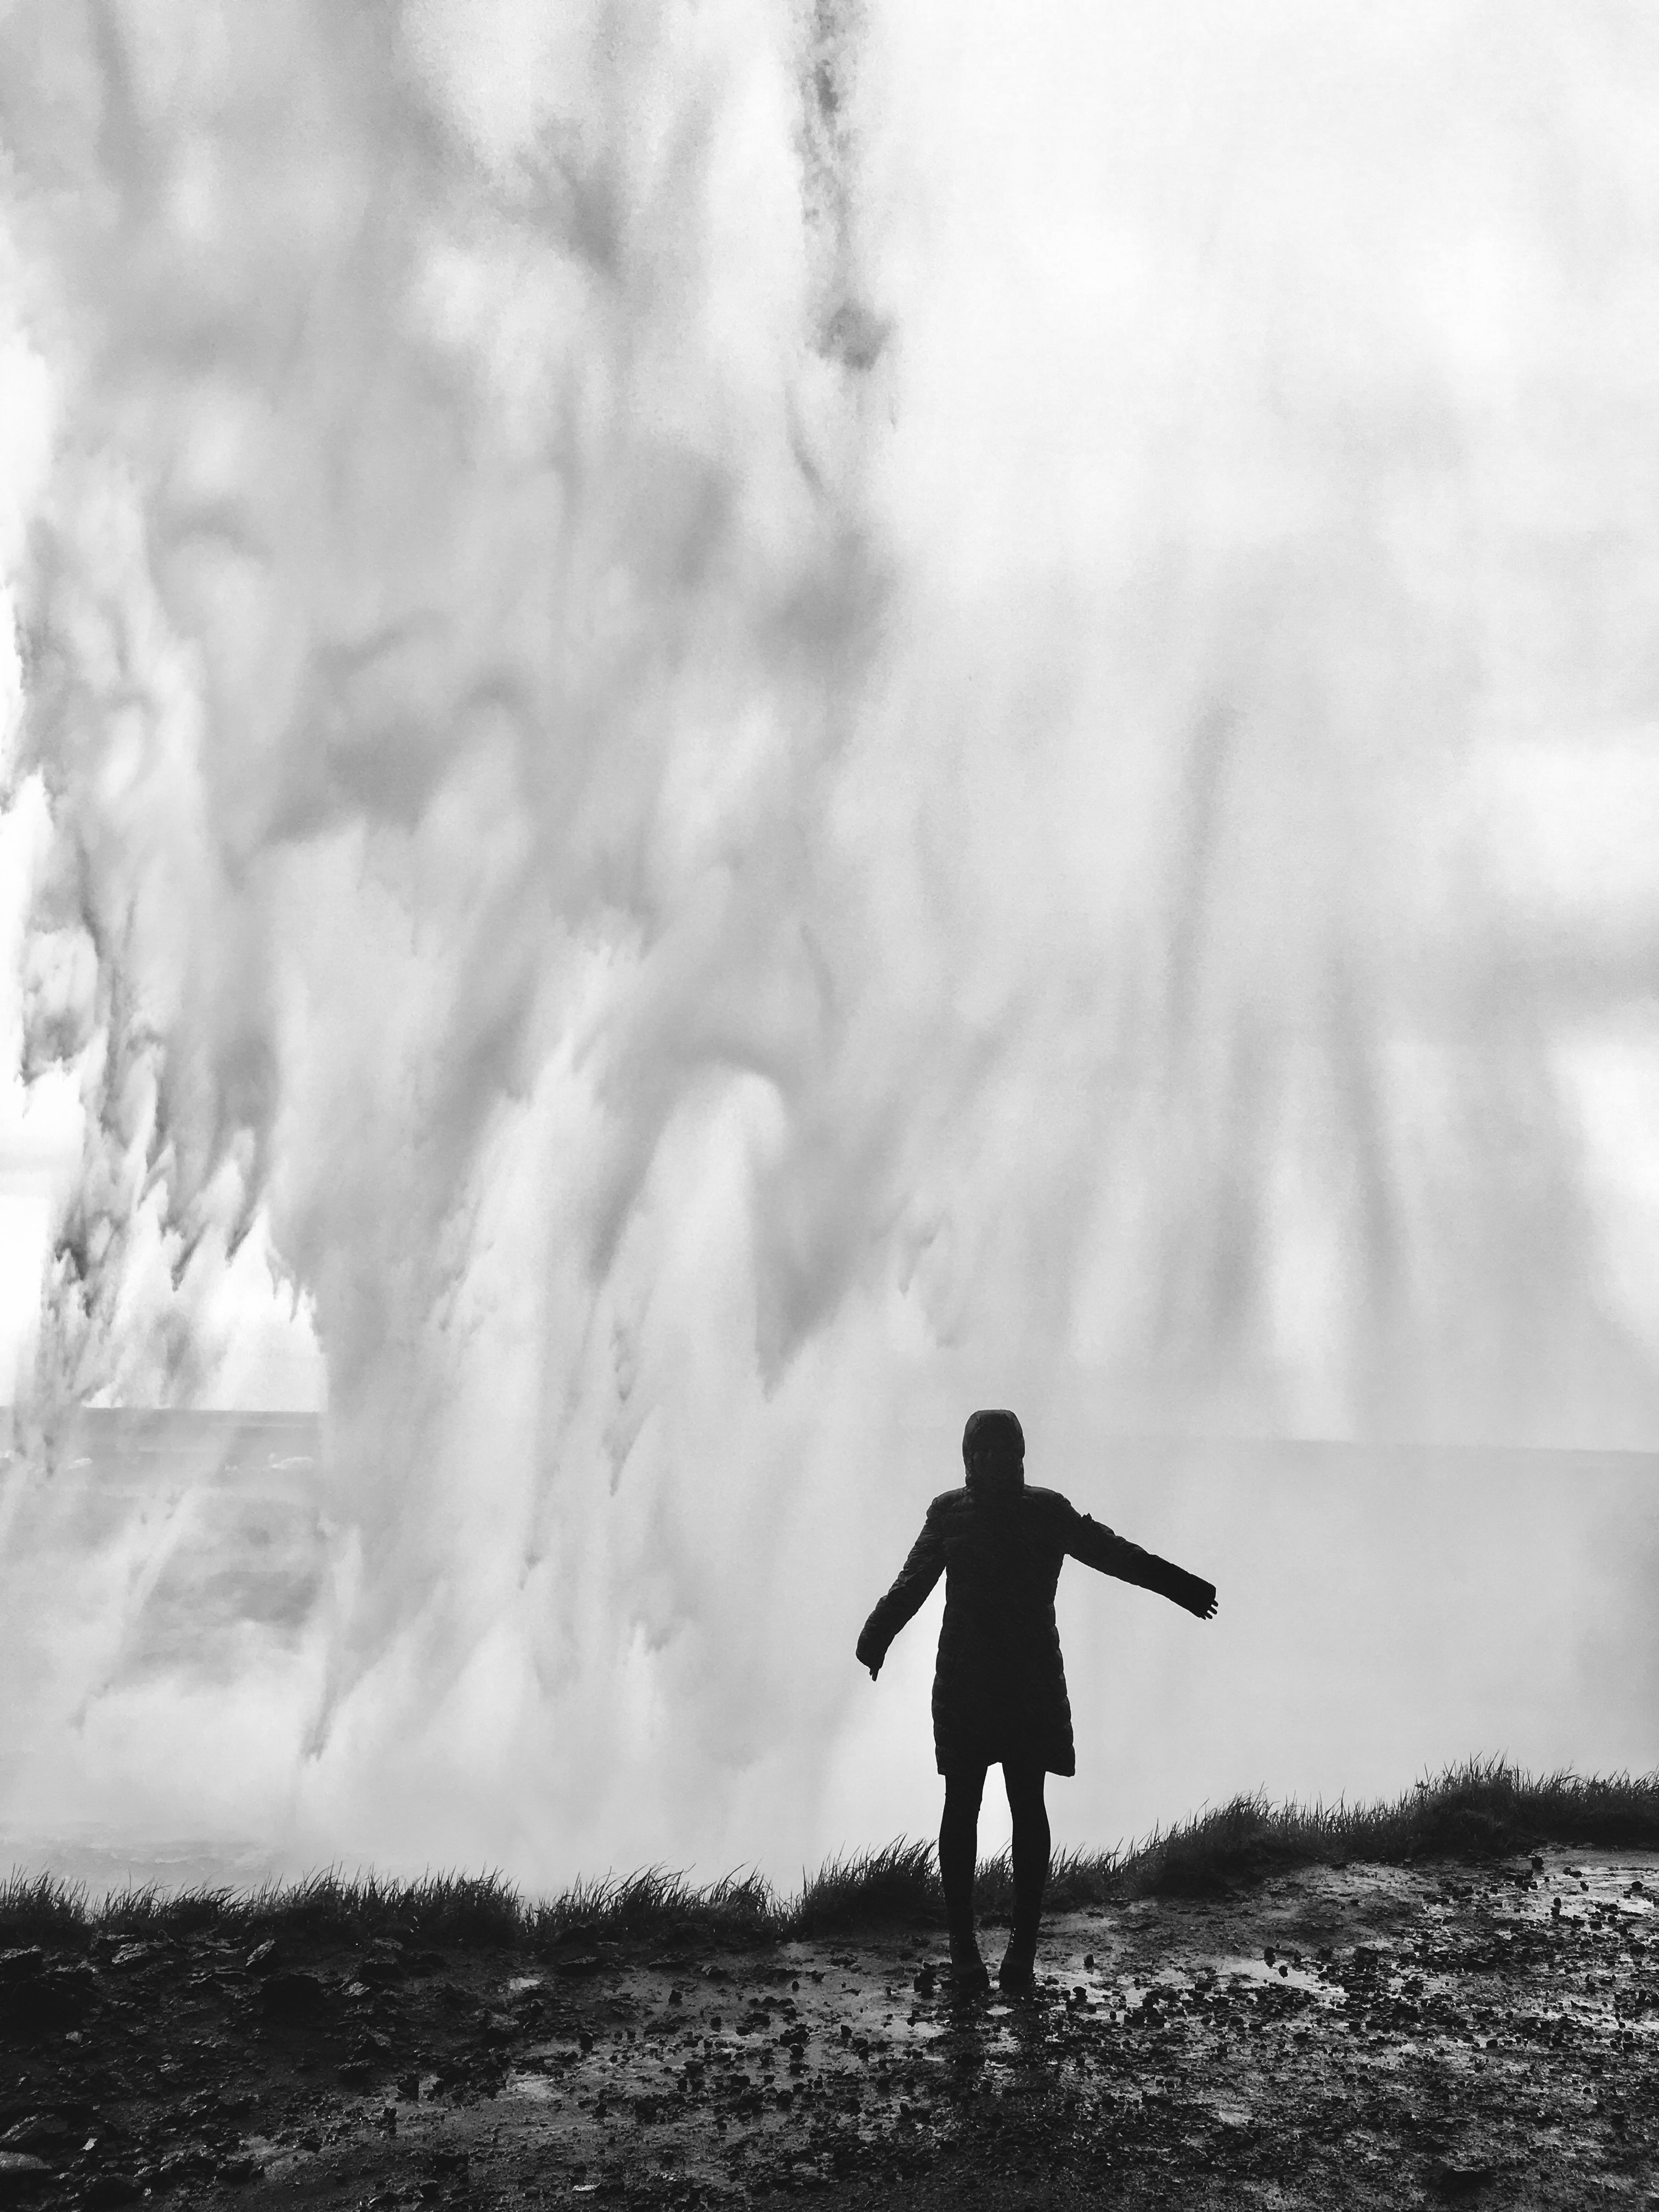 grayscale photography of person standing in front of splashing water waves